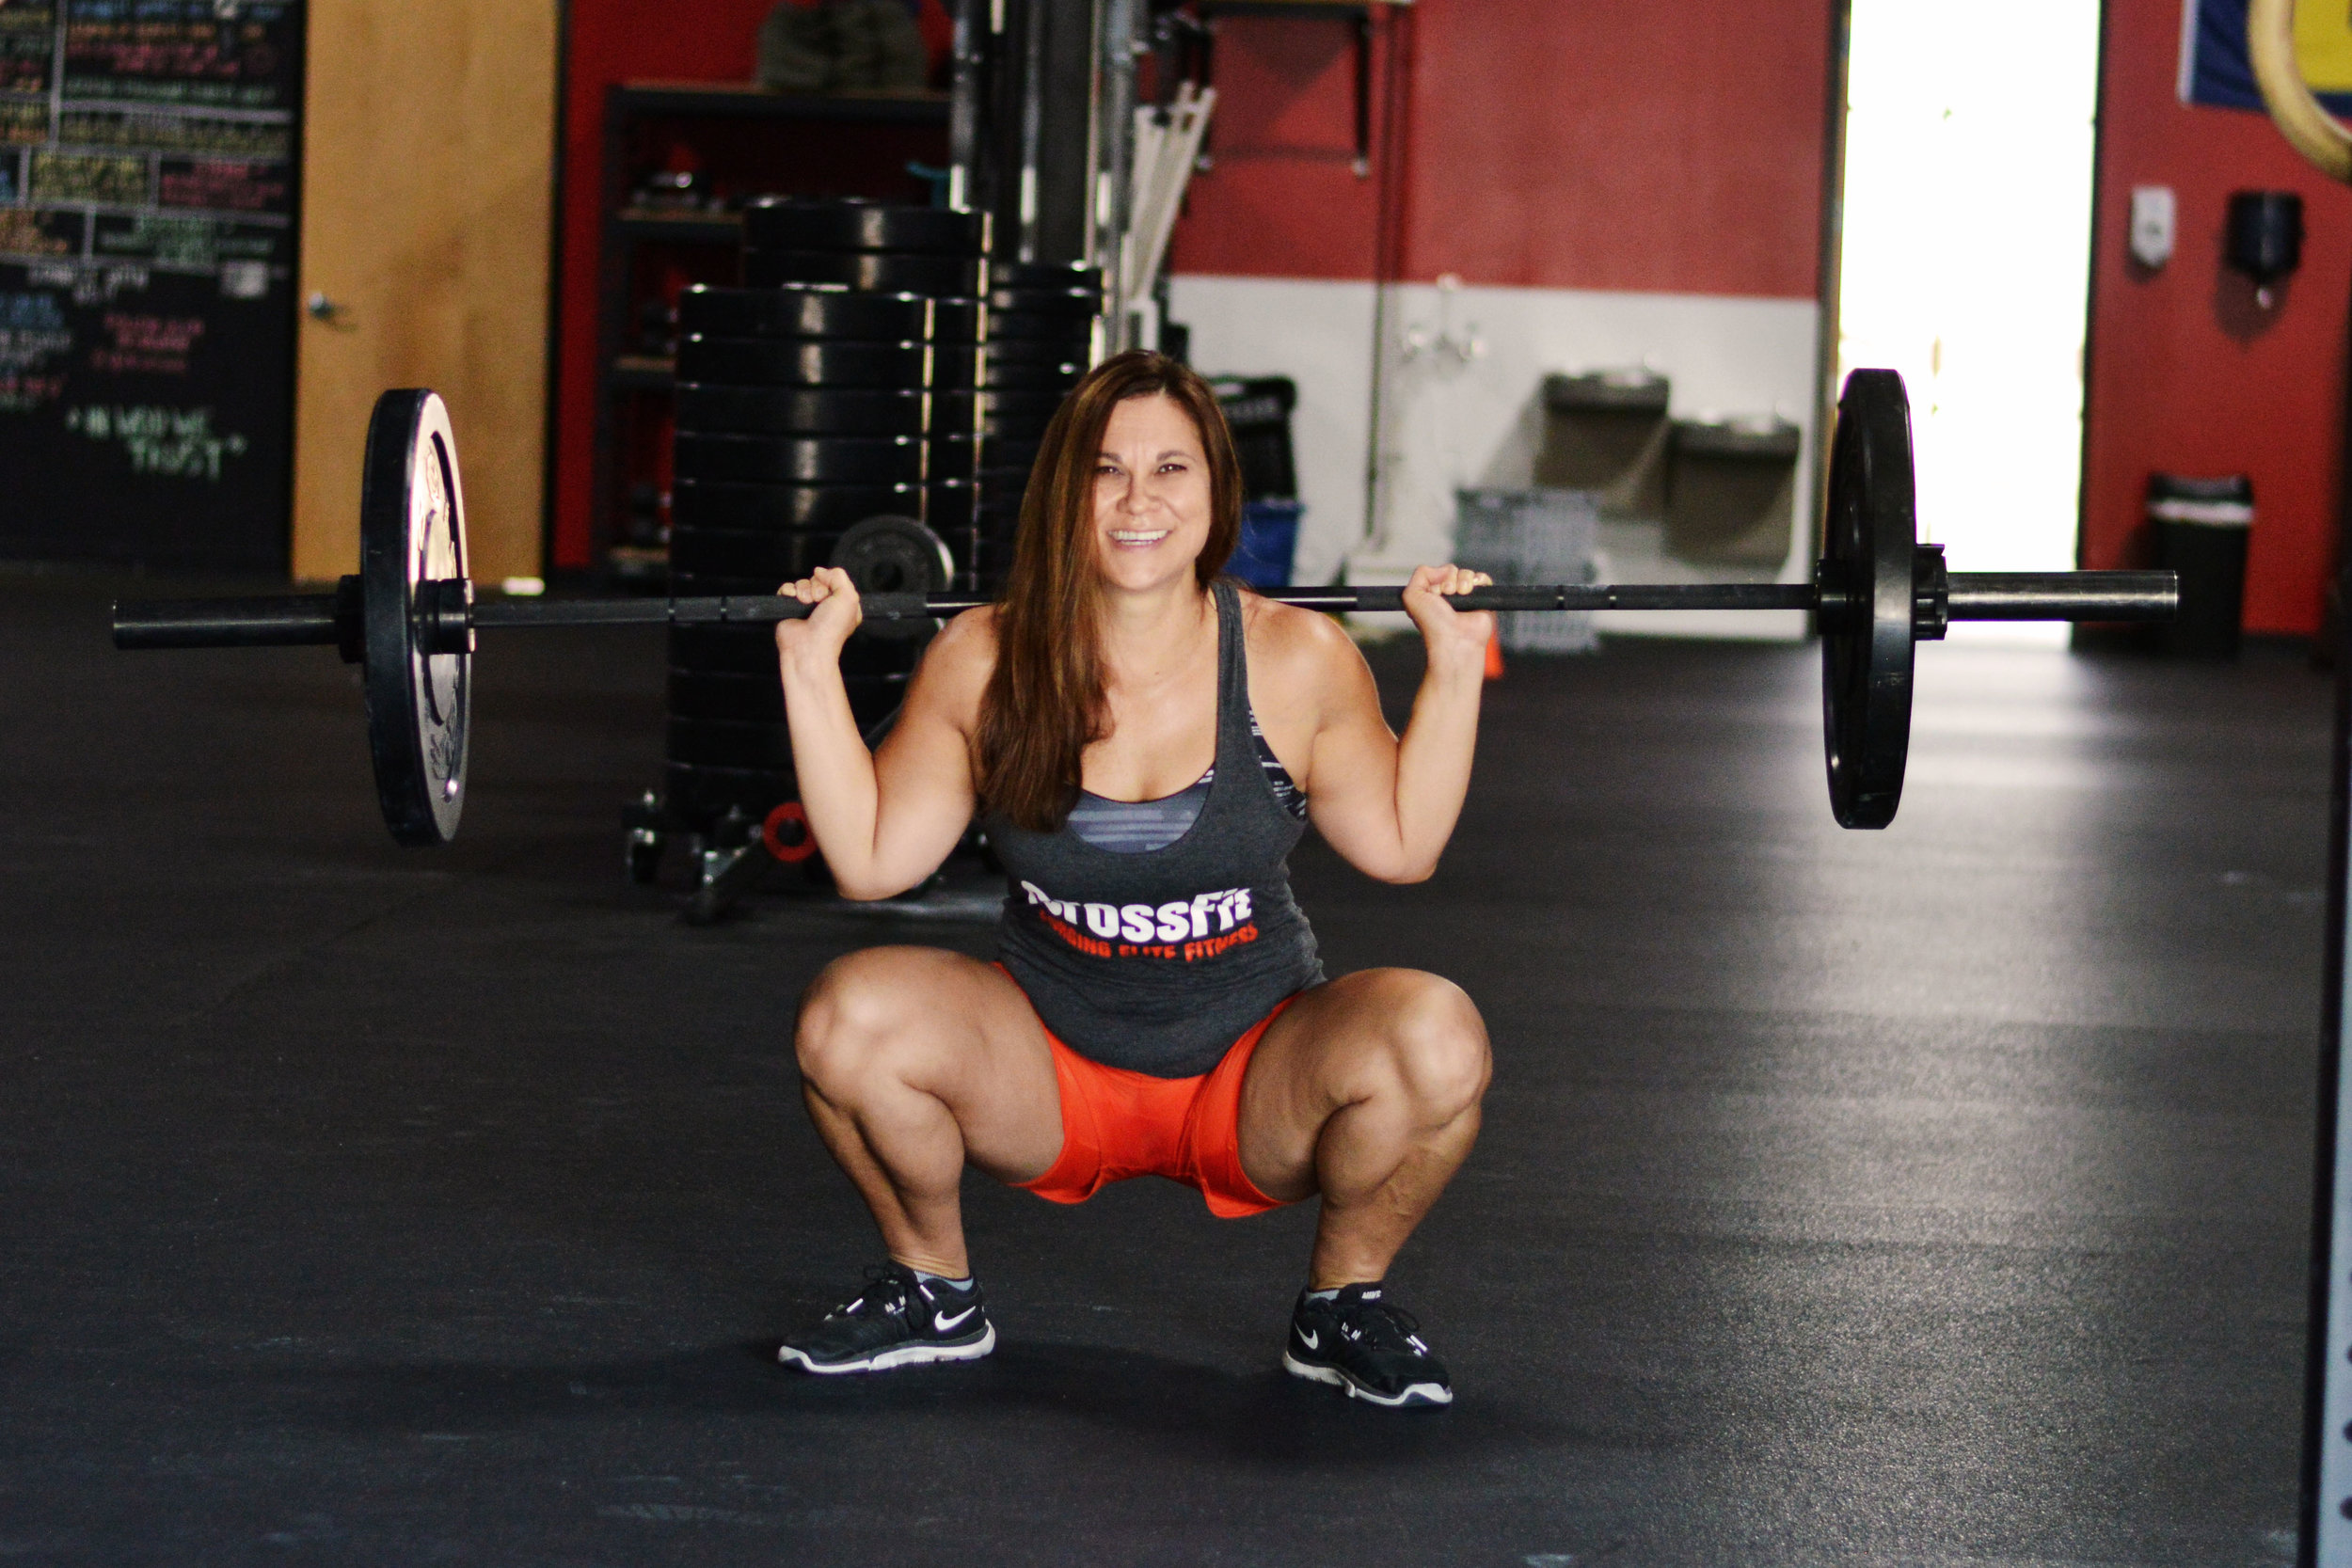 Amie McDaniel - Before I started CrossFit, I thought it was only for the super fit. I started at the box on my 41st birthday. I was very intimidated by CrossFit before coming to CrossFit Obsession. I was worried that I would embarrass myself and I was worried about getting injured. After all, I'm not getting any younger.Now, I'm hooked. I feel healthy, strong, and confident. In the beginning, it was the encouragement I received at CFO that kept me coming back. Now I'm motivated by the results I see in myself and it keeps me coming back for more.The community at CrossFit Obsession is amazing. The people here have been my biggest supporters. The coaches are also fantastic. They are very conscious of everyone's abilities and consider safety to be a priority. They ensure proper form is used to prevent injury. They go out of their way to make everyone feel welcome and to become the best they can be.